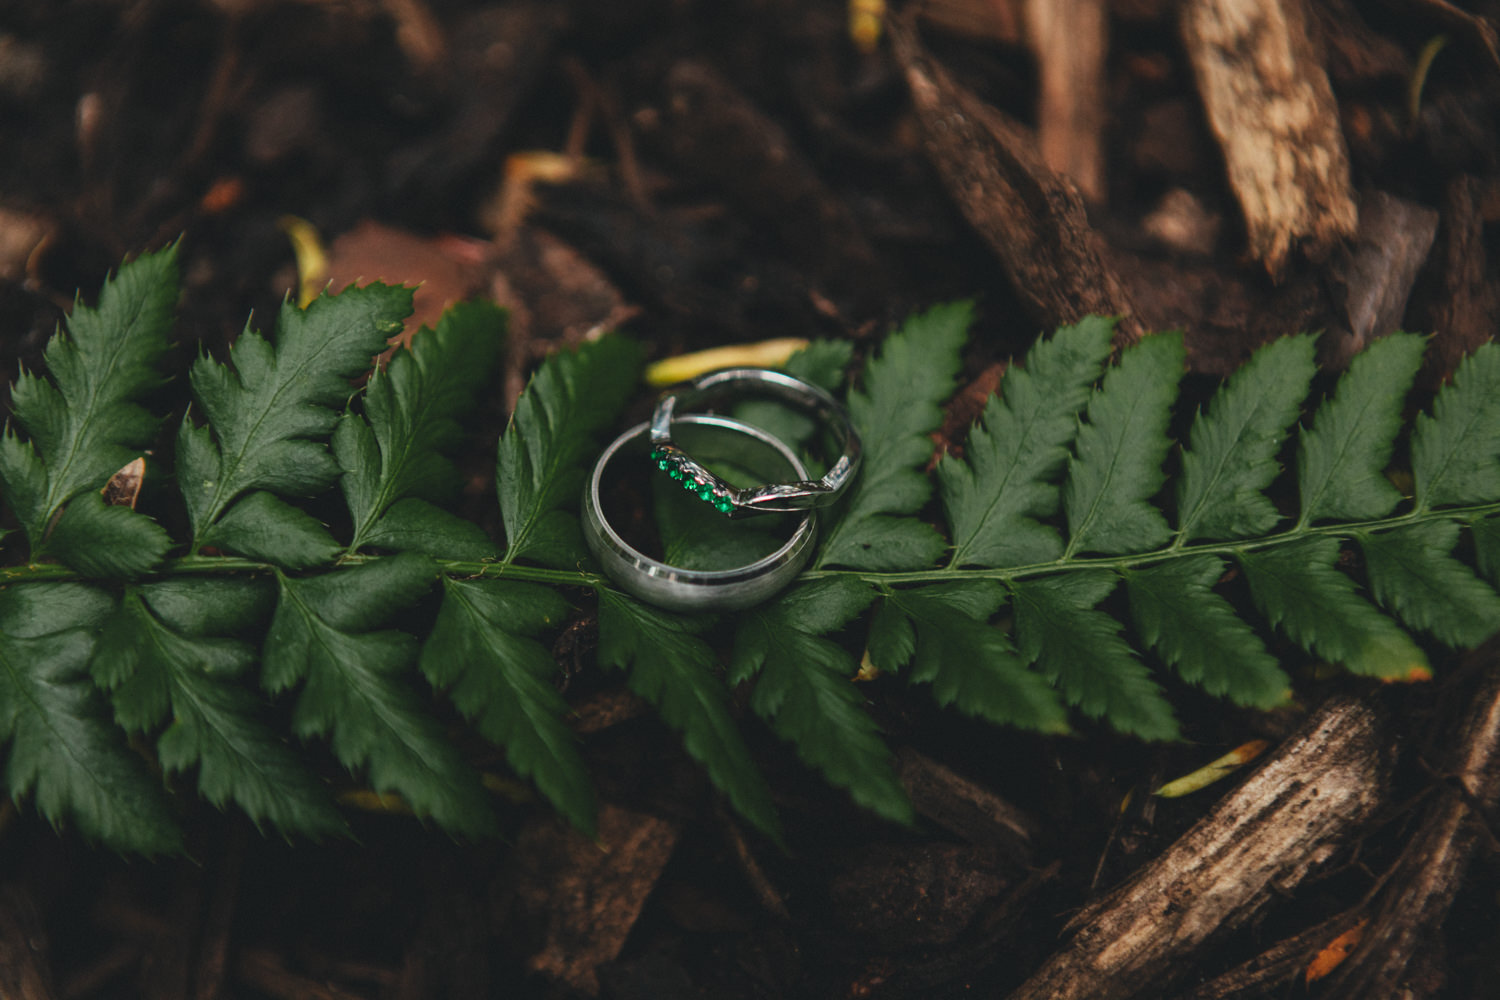 Quirky Woodland Wedding Photography, wedding rings on a fern, woodland wedding, wild woodland wedding